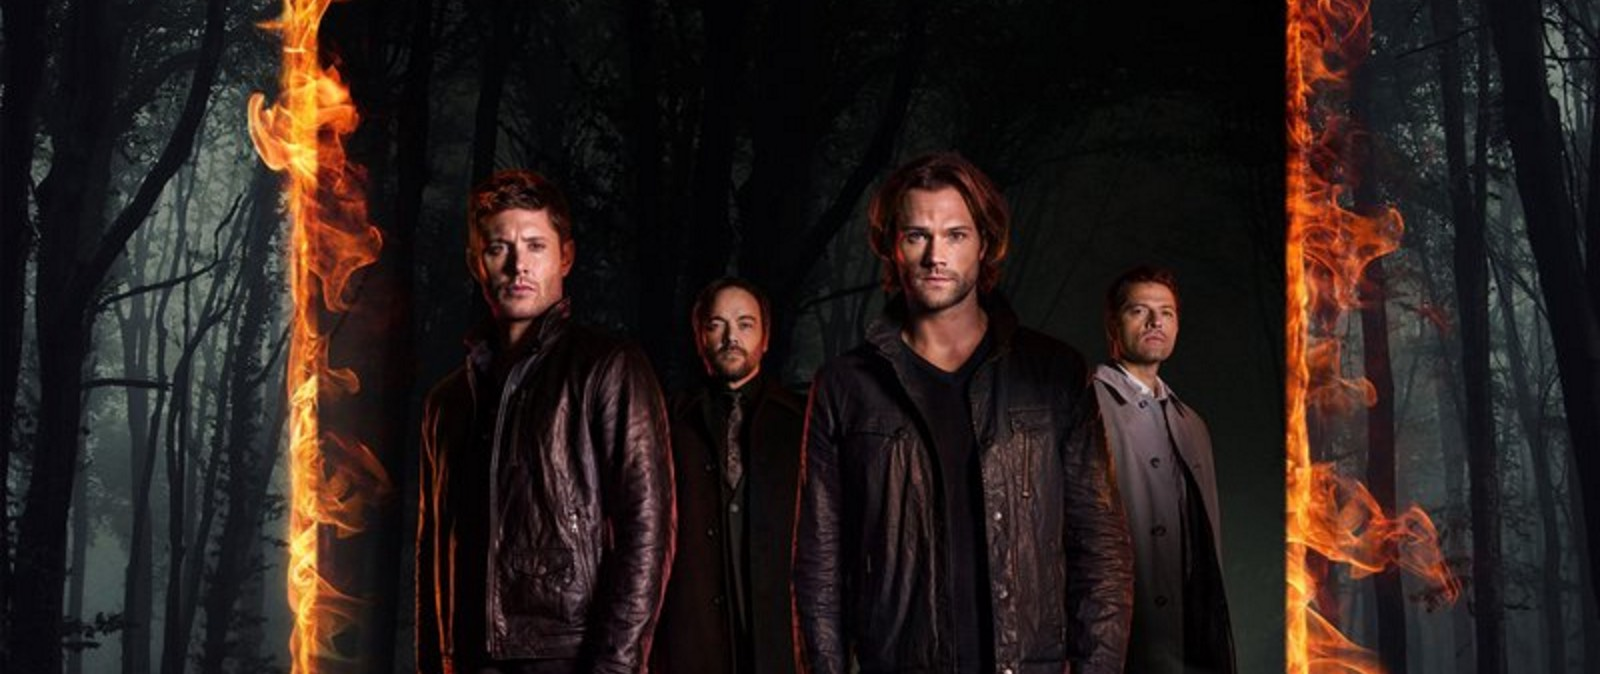 Supernatural Season 13 is finally here!